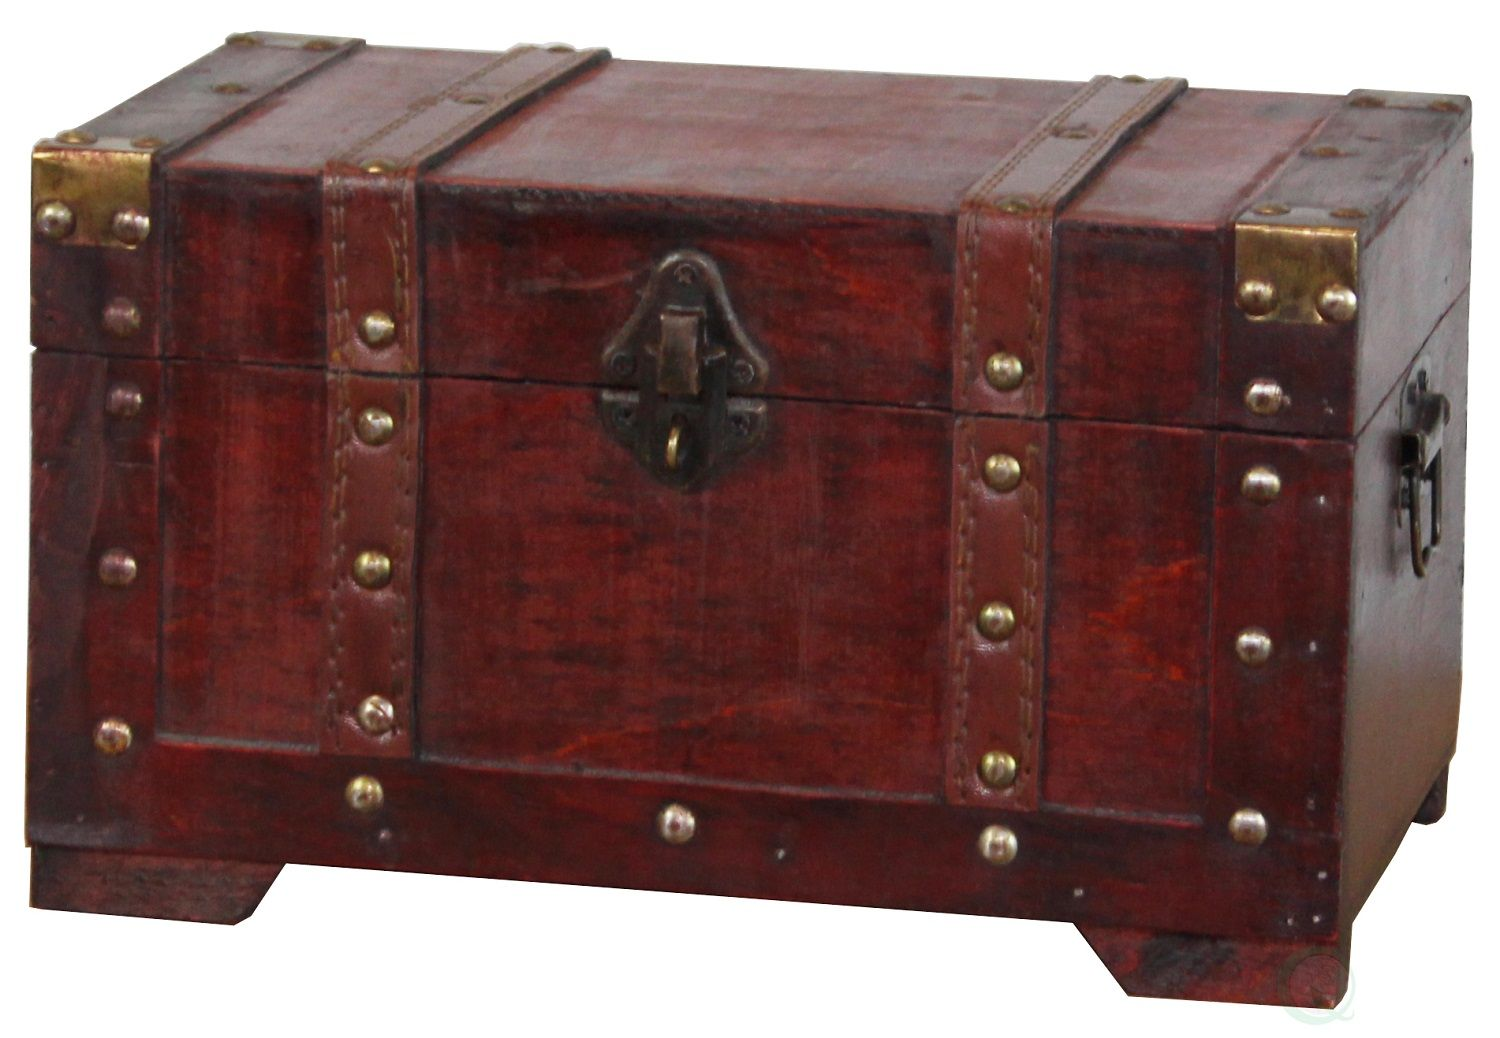 Antique Style Wooden Small Trunk Walmart Com In 2020 Wooden Trunks Antique Style Trunks